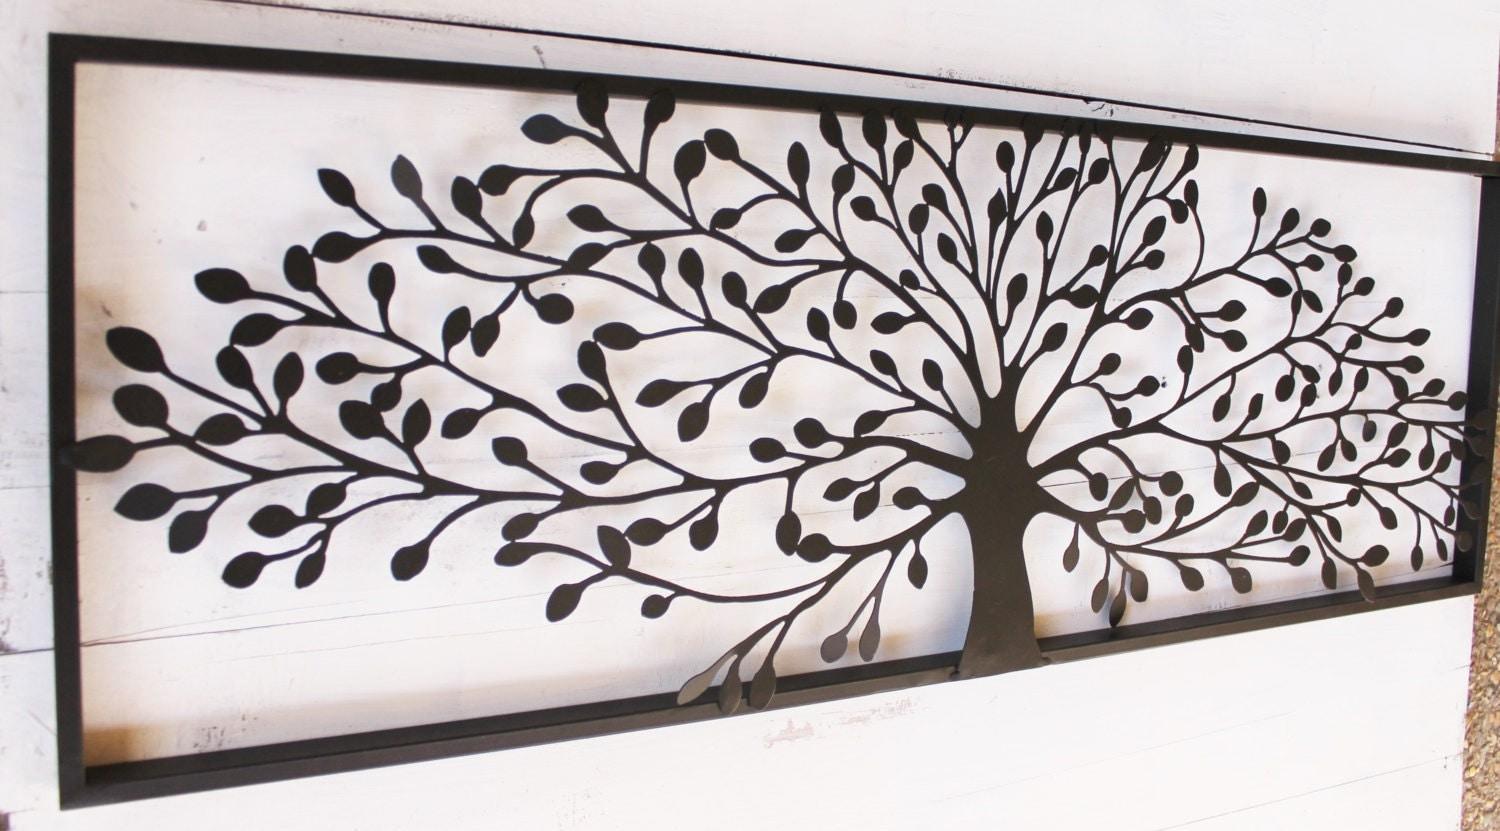 metal wall art decor metal wall decor metal tree wall art. Black Bedroom Furniture Sets. Home Design Ideas